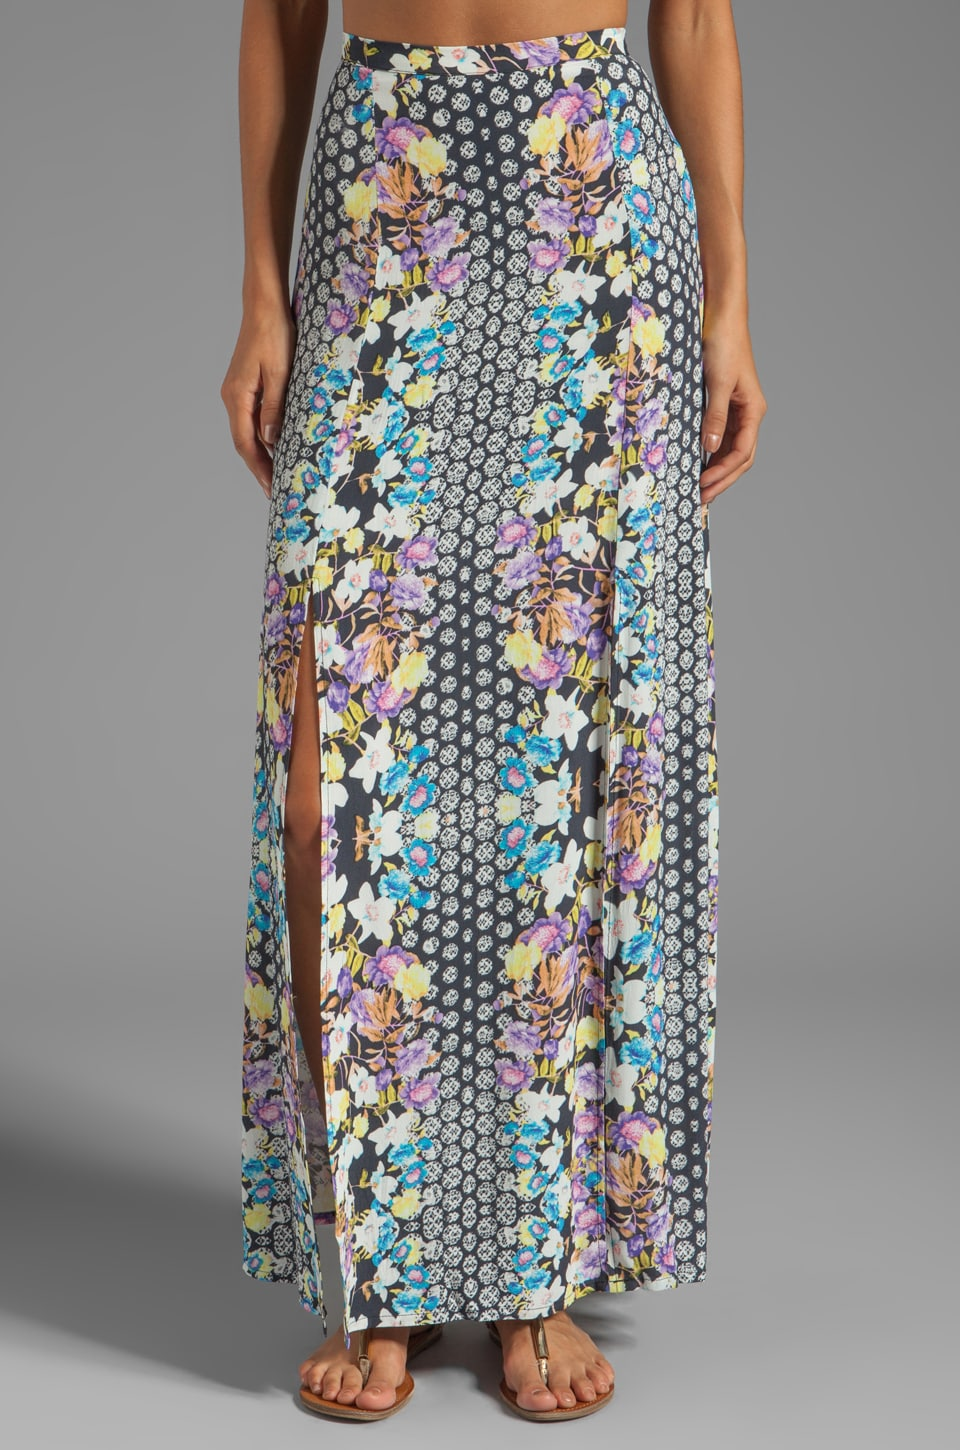 MINKPINK Wonderland Maxi Skirt in Multi